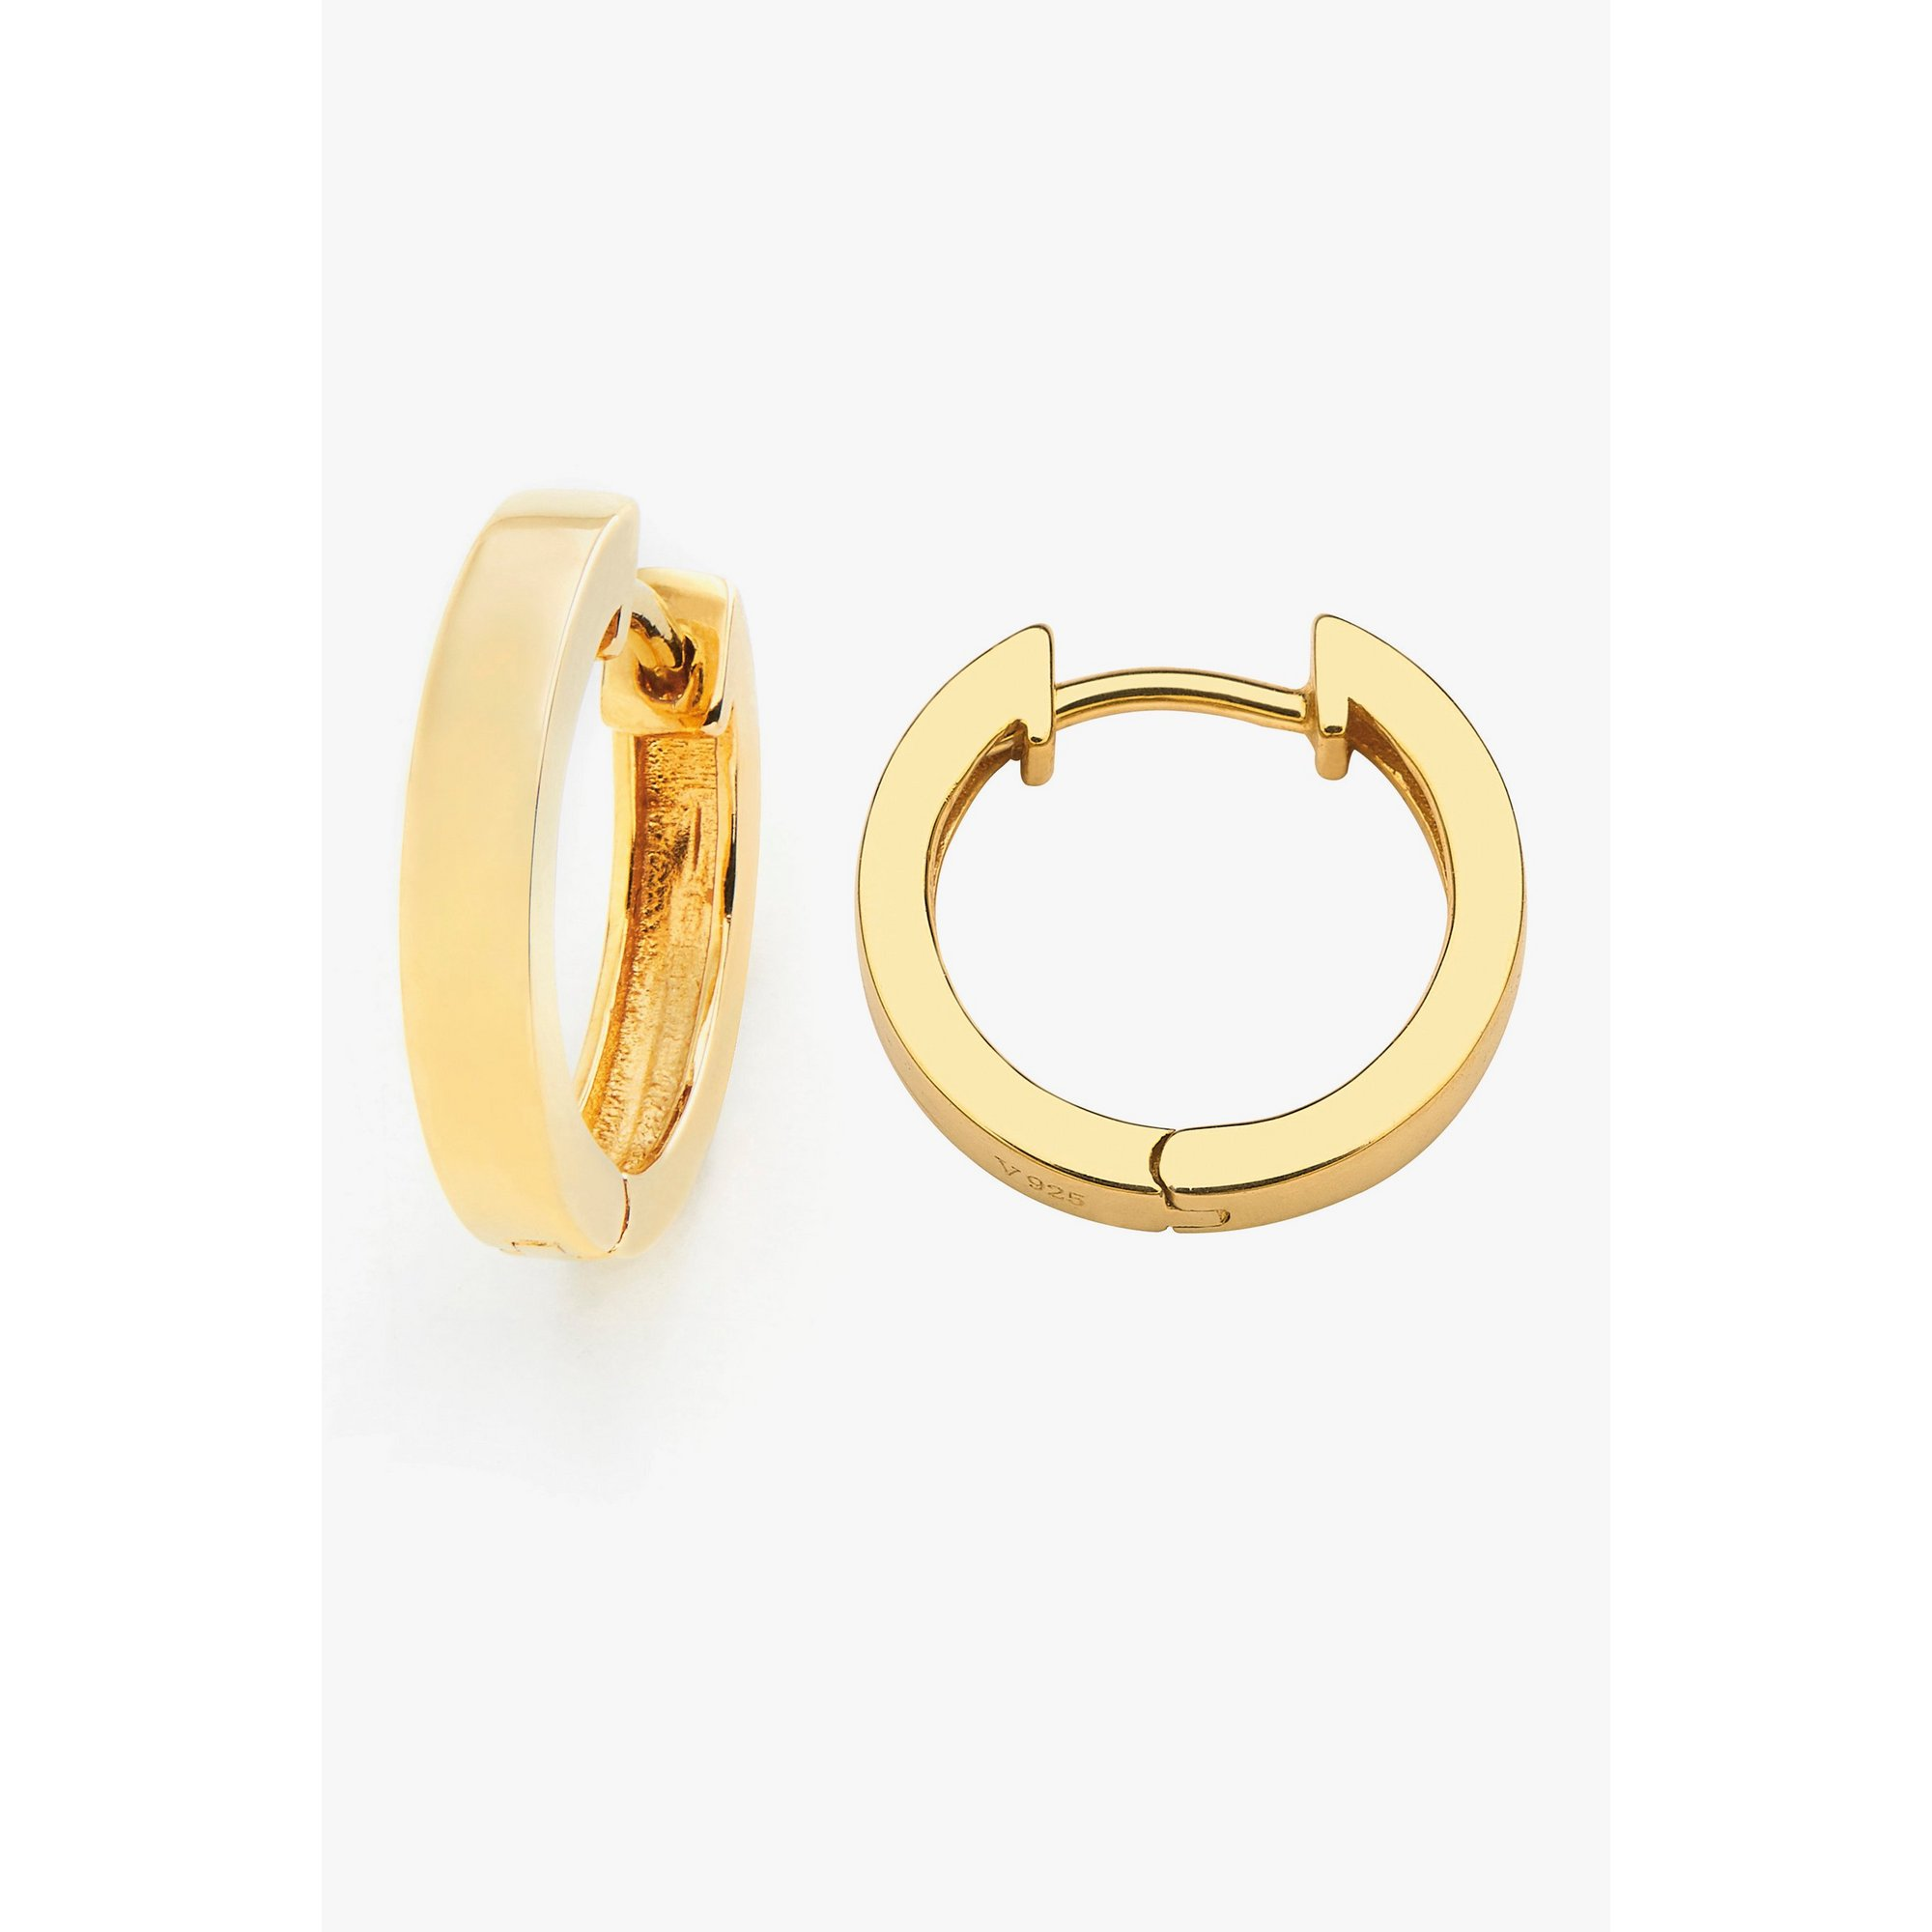 Image of Espree 11mm Gold Plated Plain Hinged Huggie Earrings